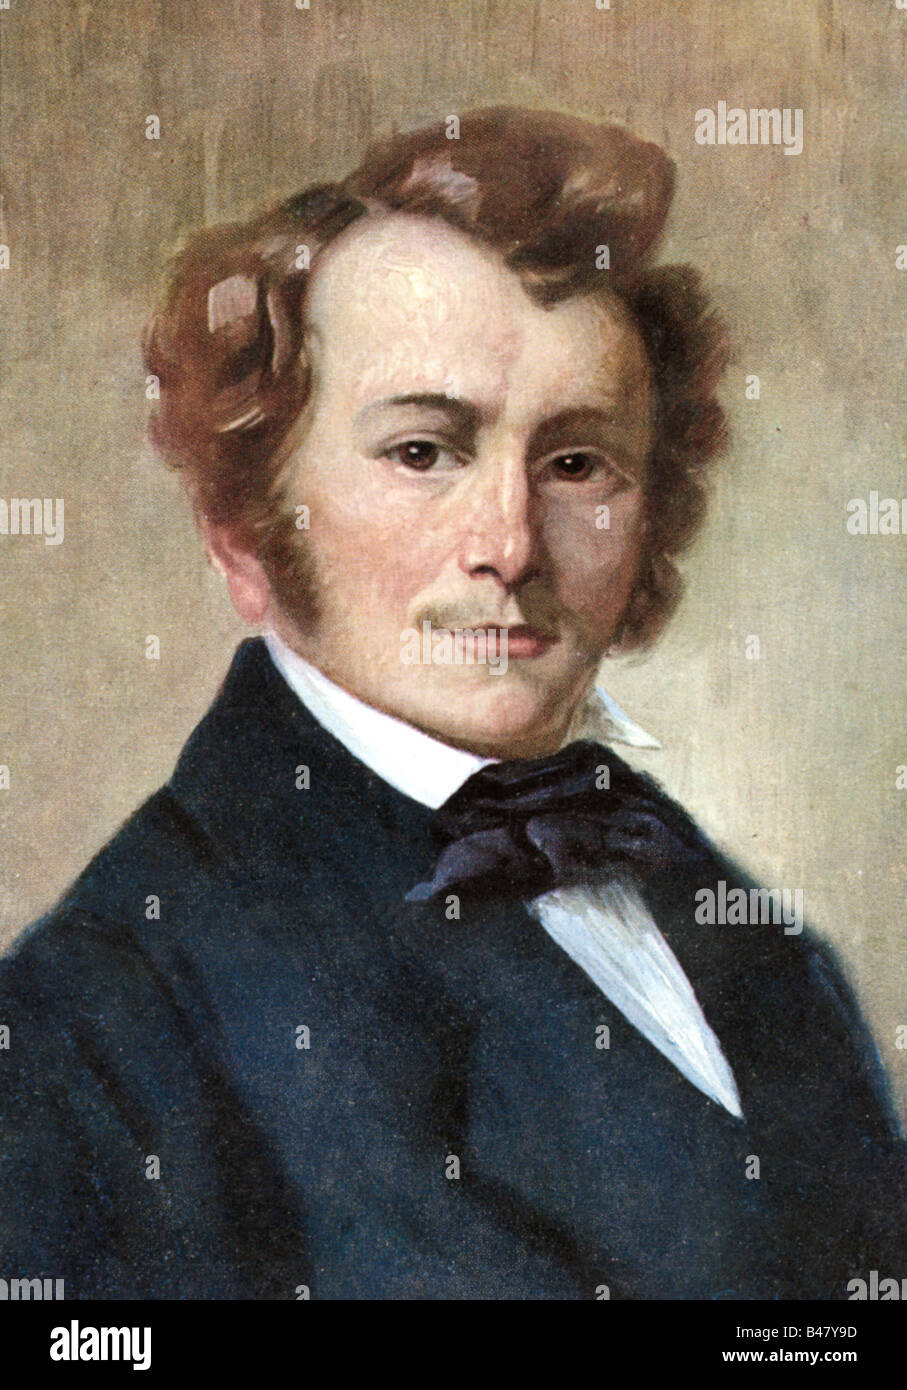 Lortzing, Albert, 23.10.1801 - 21.01.1851, German composer, portrait, painting by Robert Einhorn, circa 1910, Additional - Stock Image